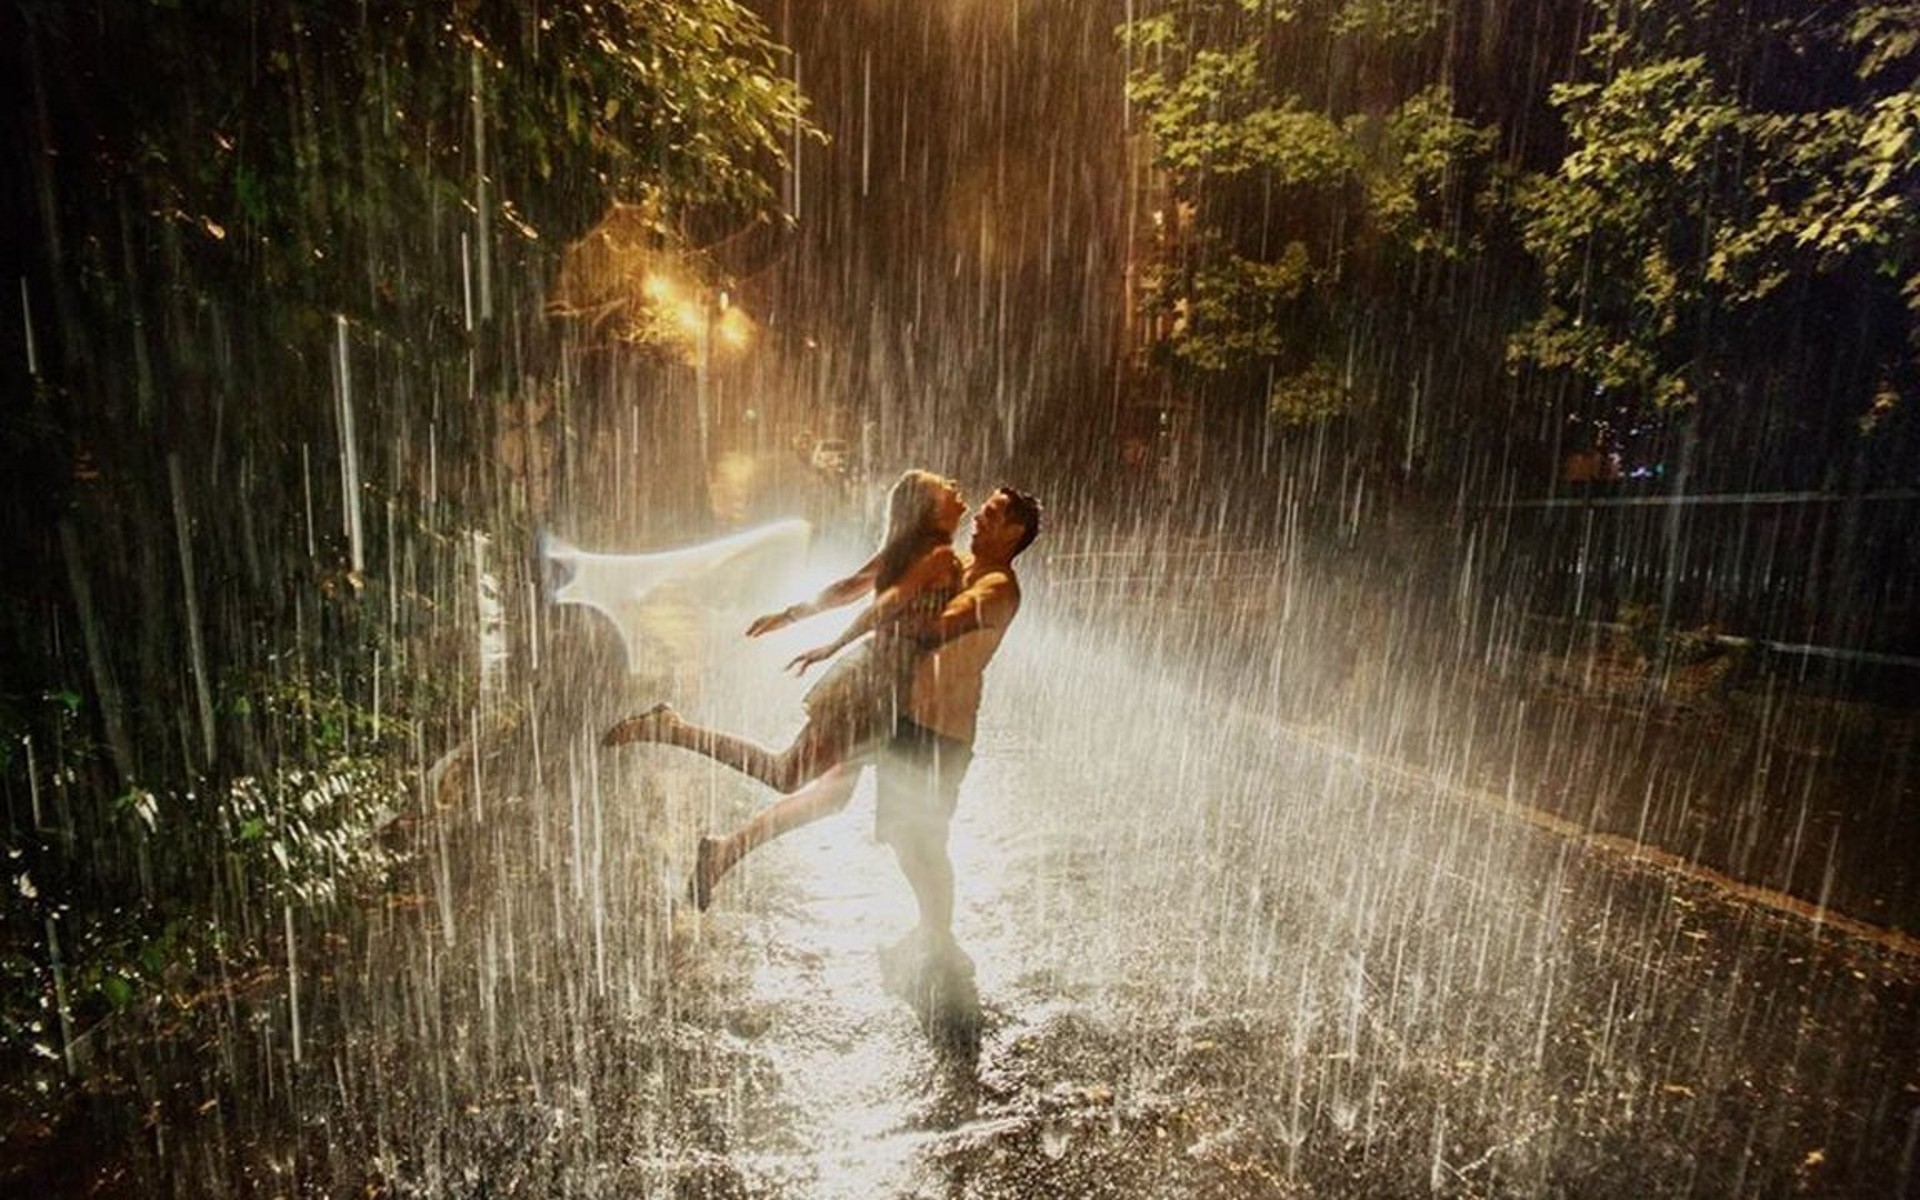 romantic rainy wallpaper - photo #15